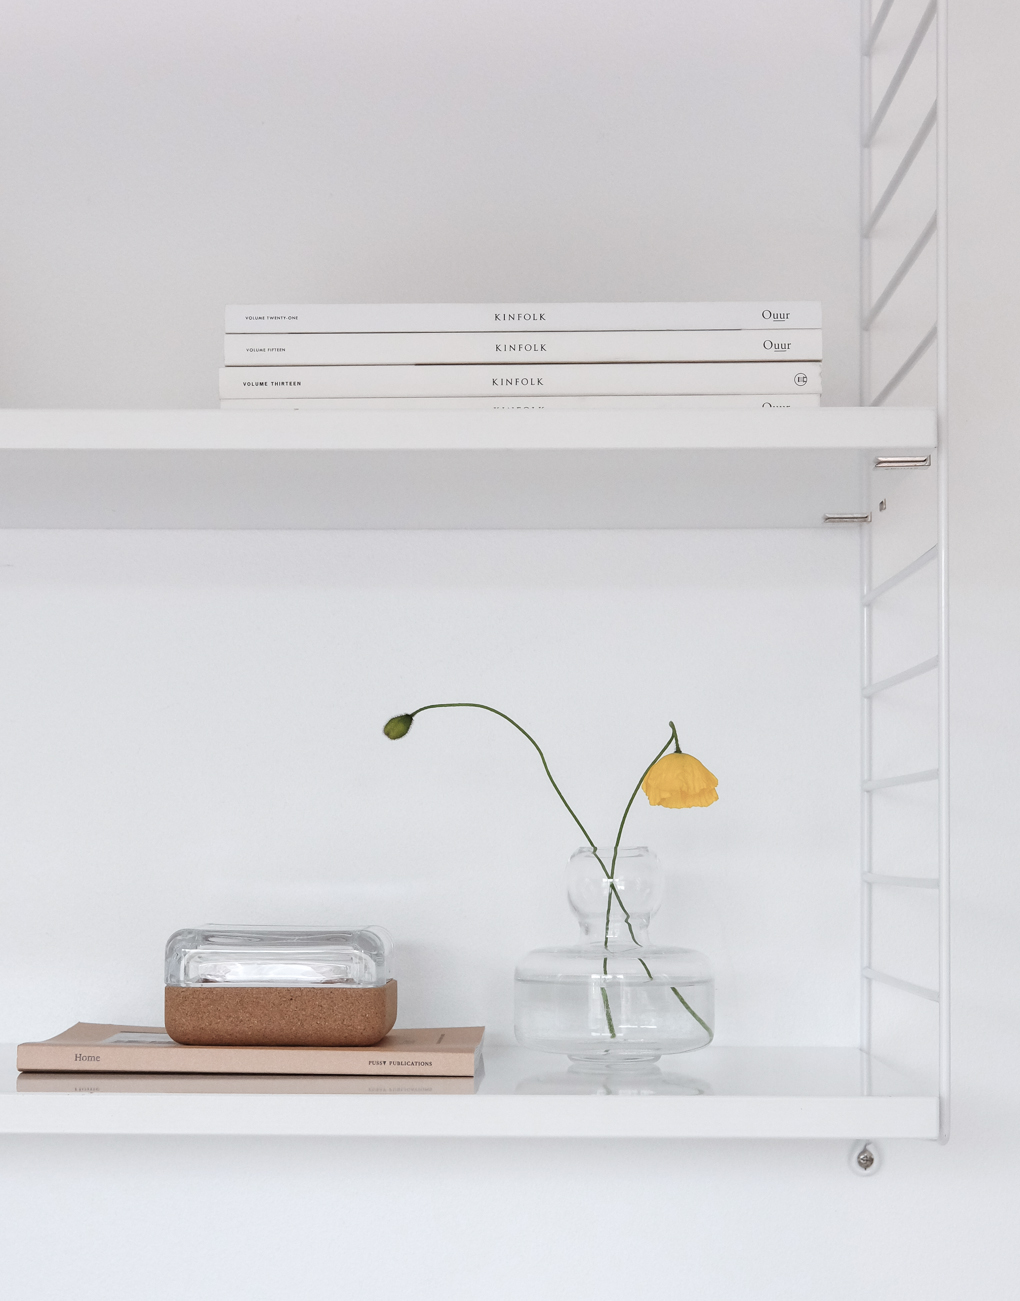 String-shelf-styling.-Poppies.-Styling-and-photo-by-Anu-Reinson.jpg